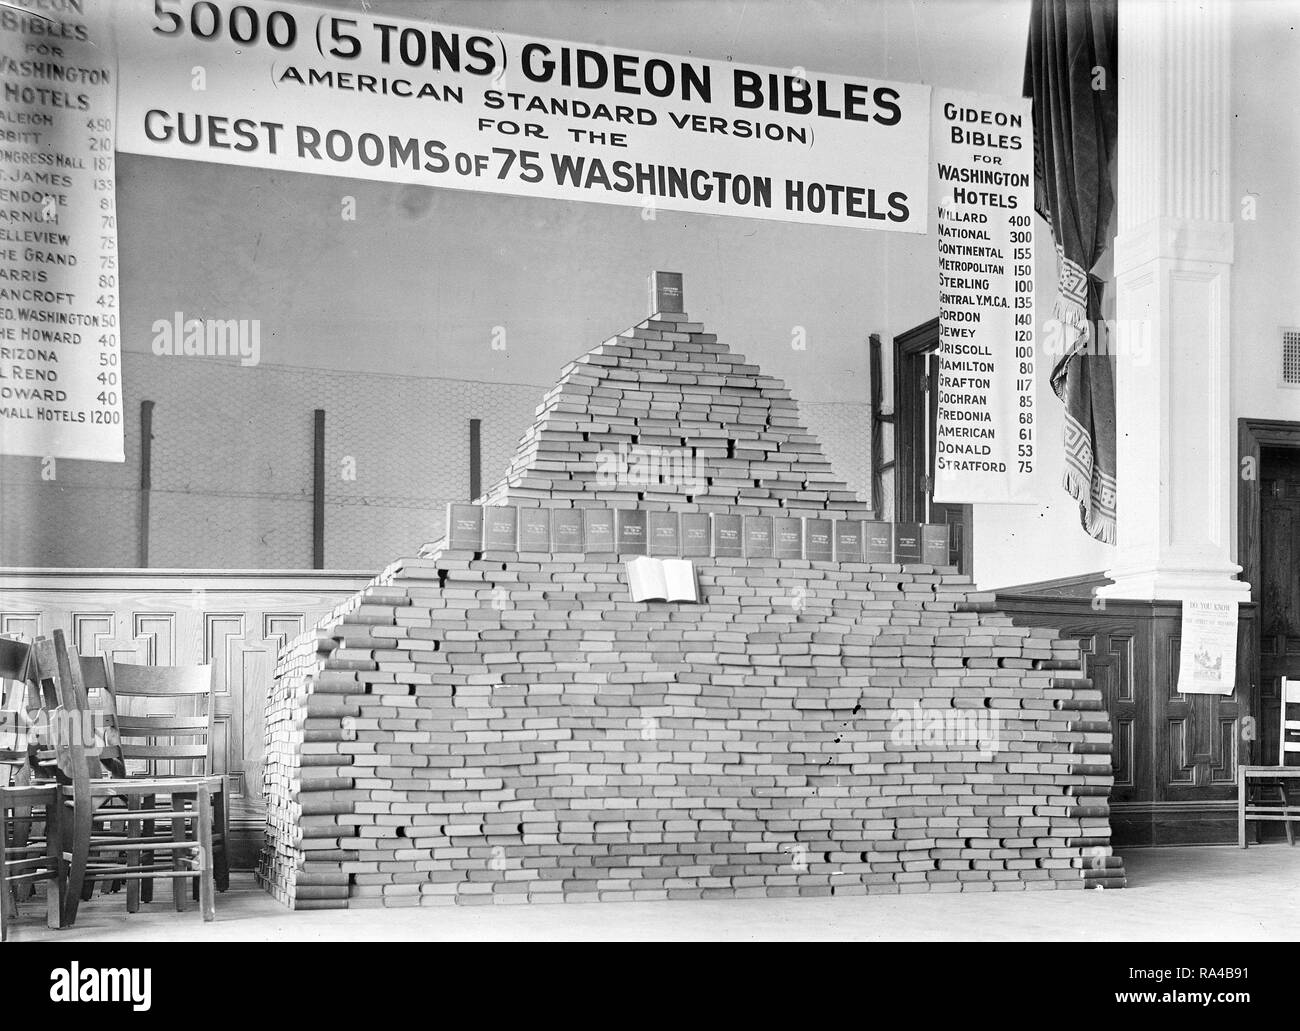 Stack of Bibles, 5000 bibles (Gideon American Standard Version bibles) for Washington D.C. Hotels ca. 1913 - Stock Image